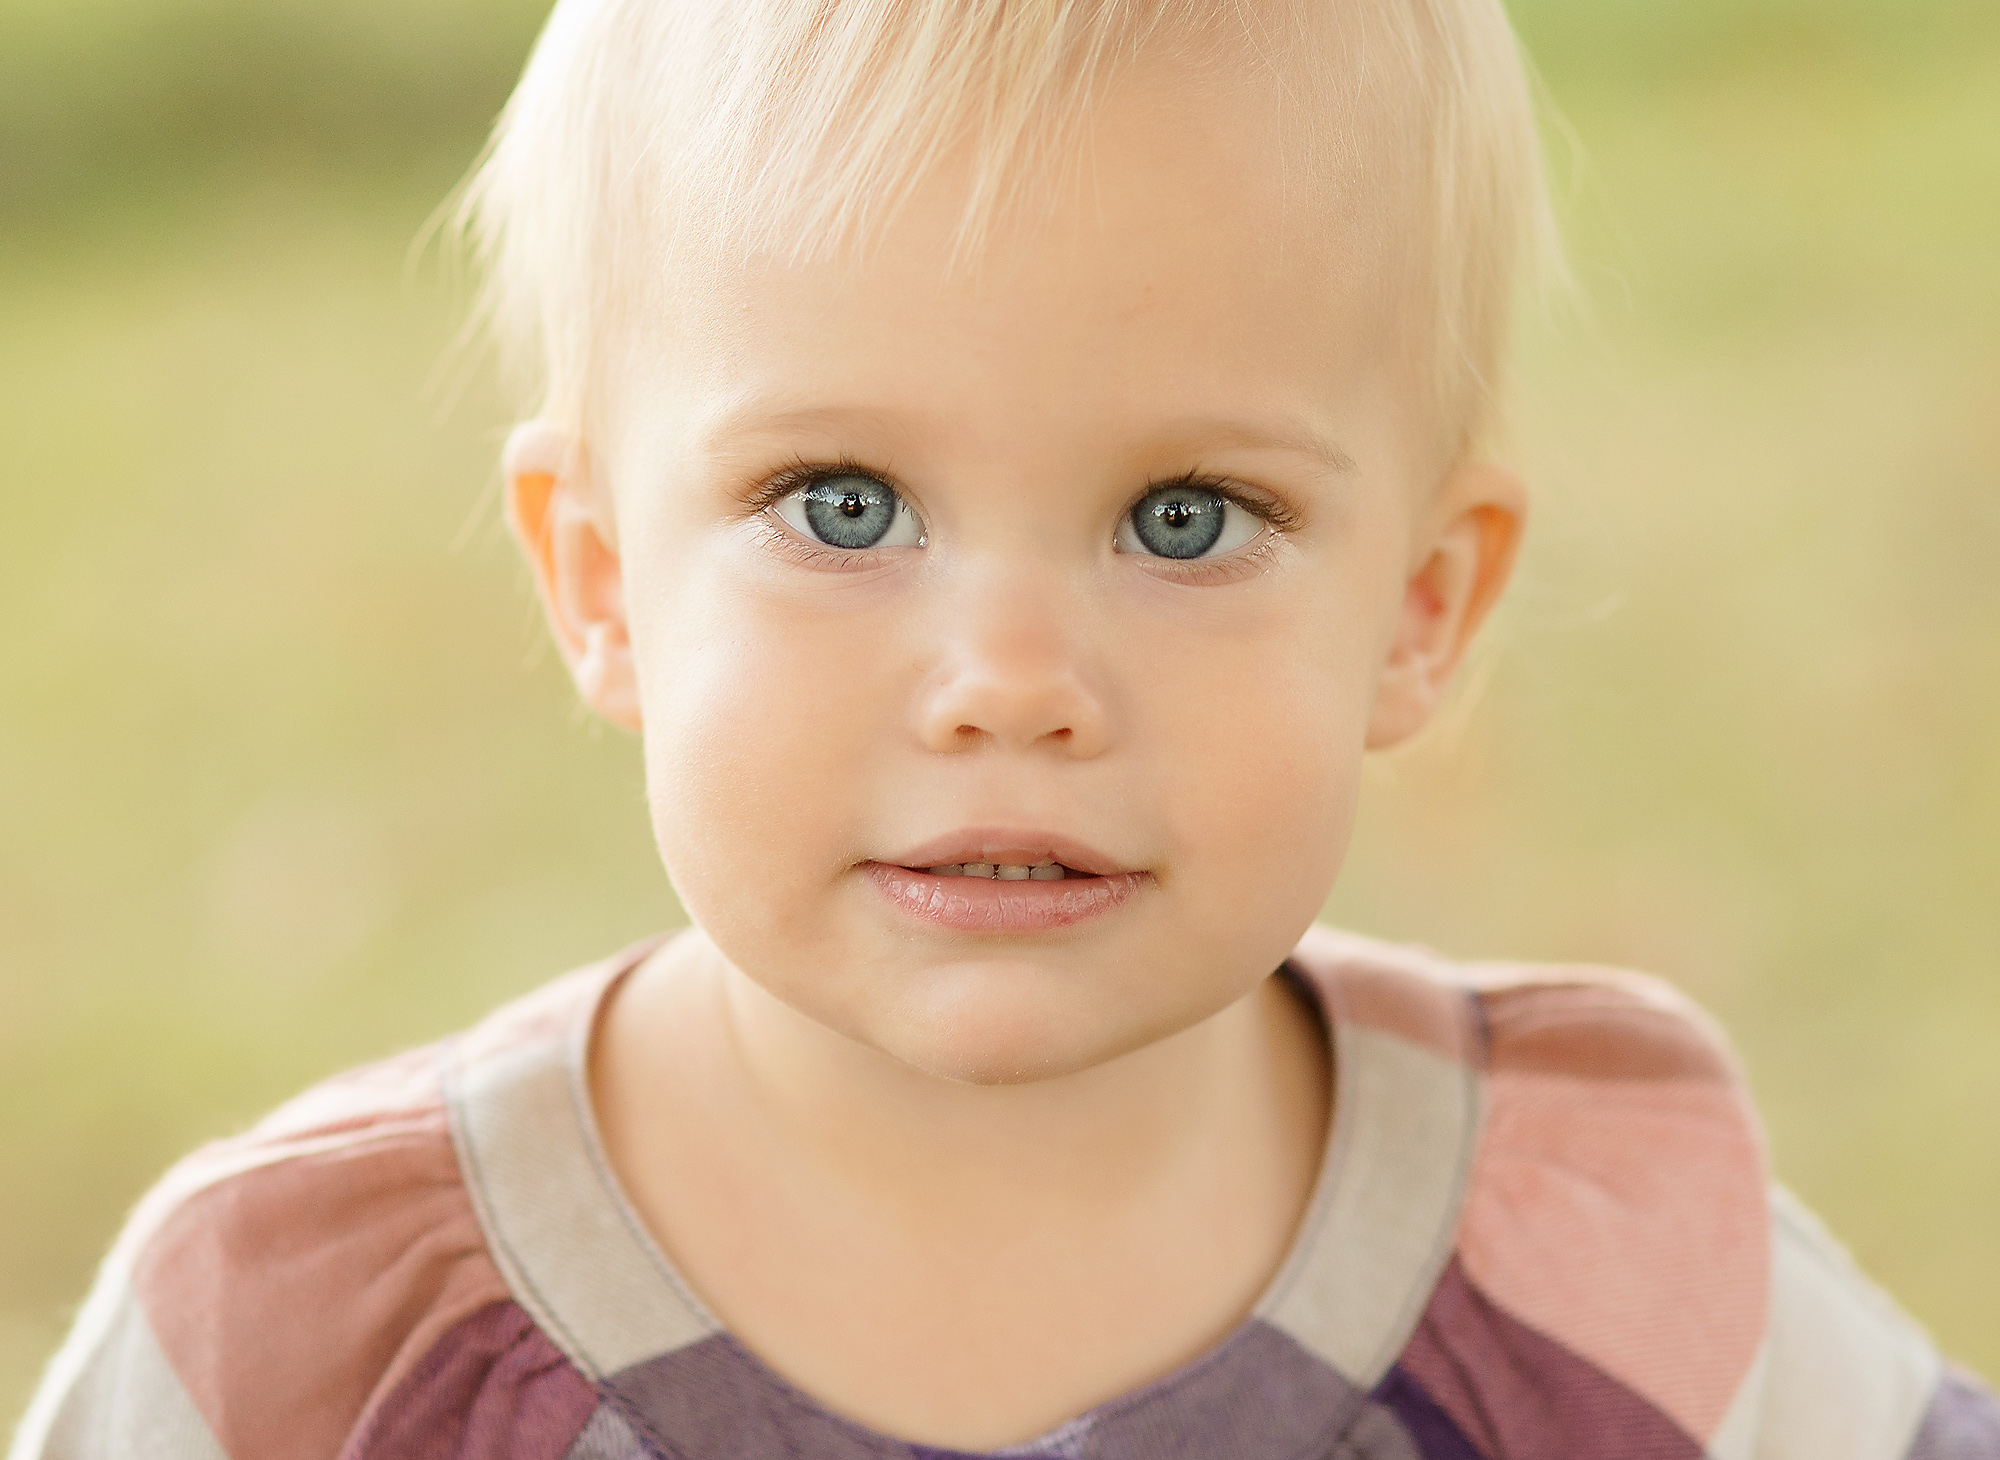 blue eyed beauty 1 year old